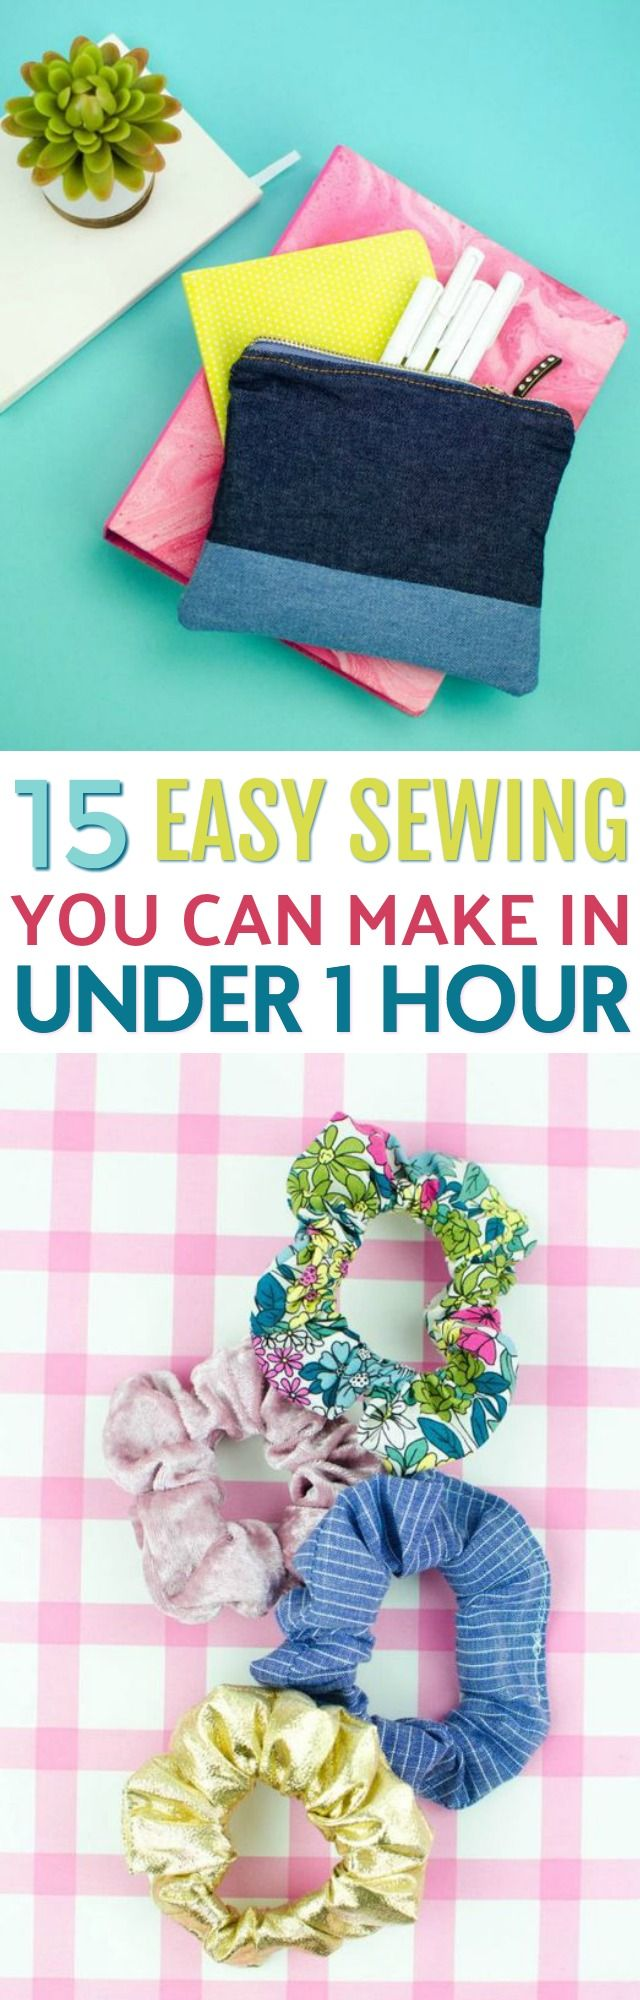 We want to share 15 of the Easiest Sewing Projects Ever with you! As a beginner,...